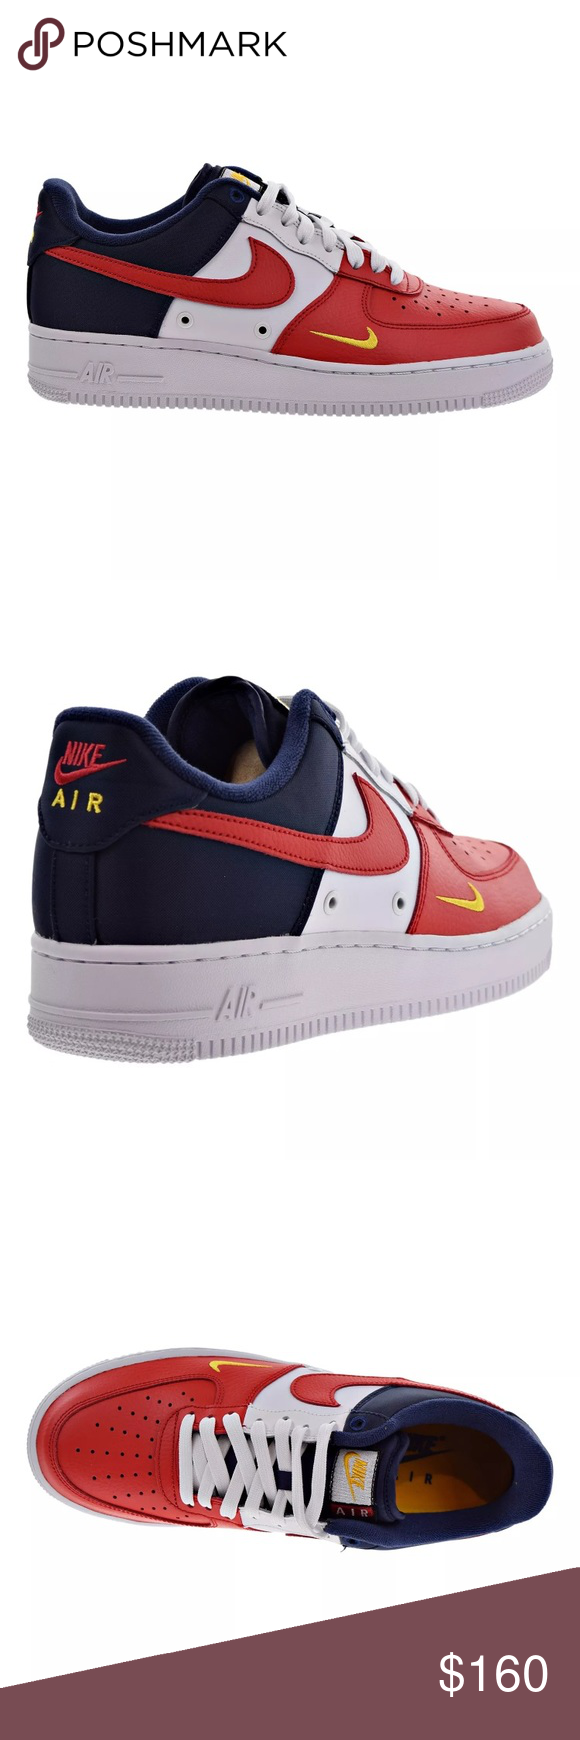 Nike Air Force 1 LV8 size Nike air force, Air force and Size 10